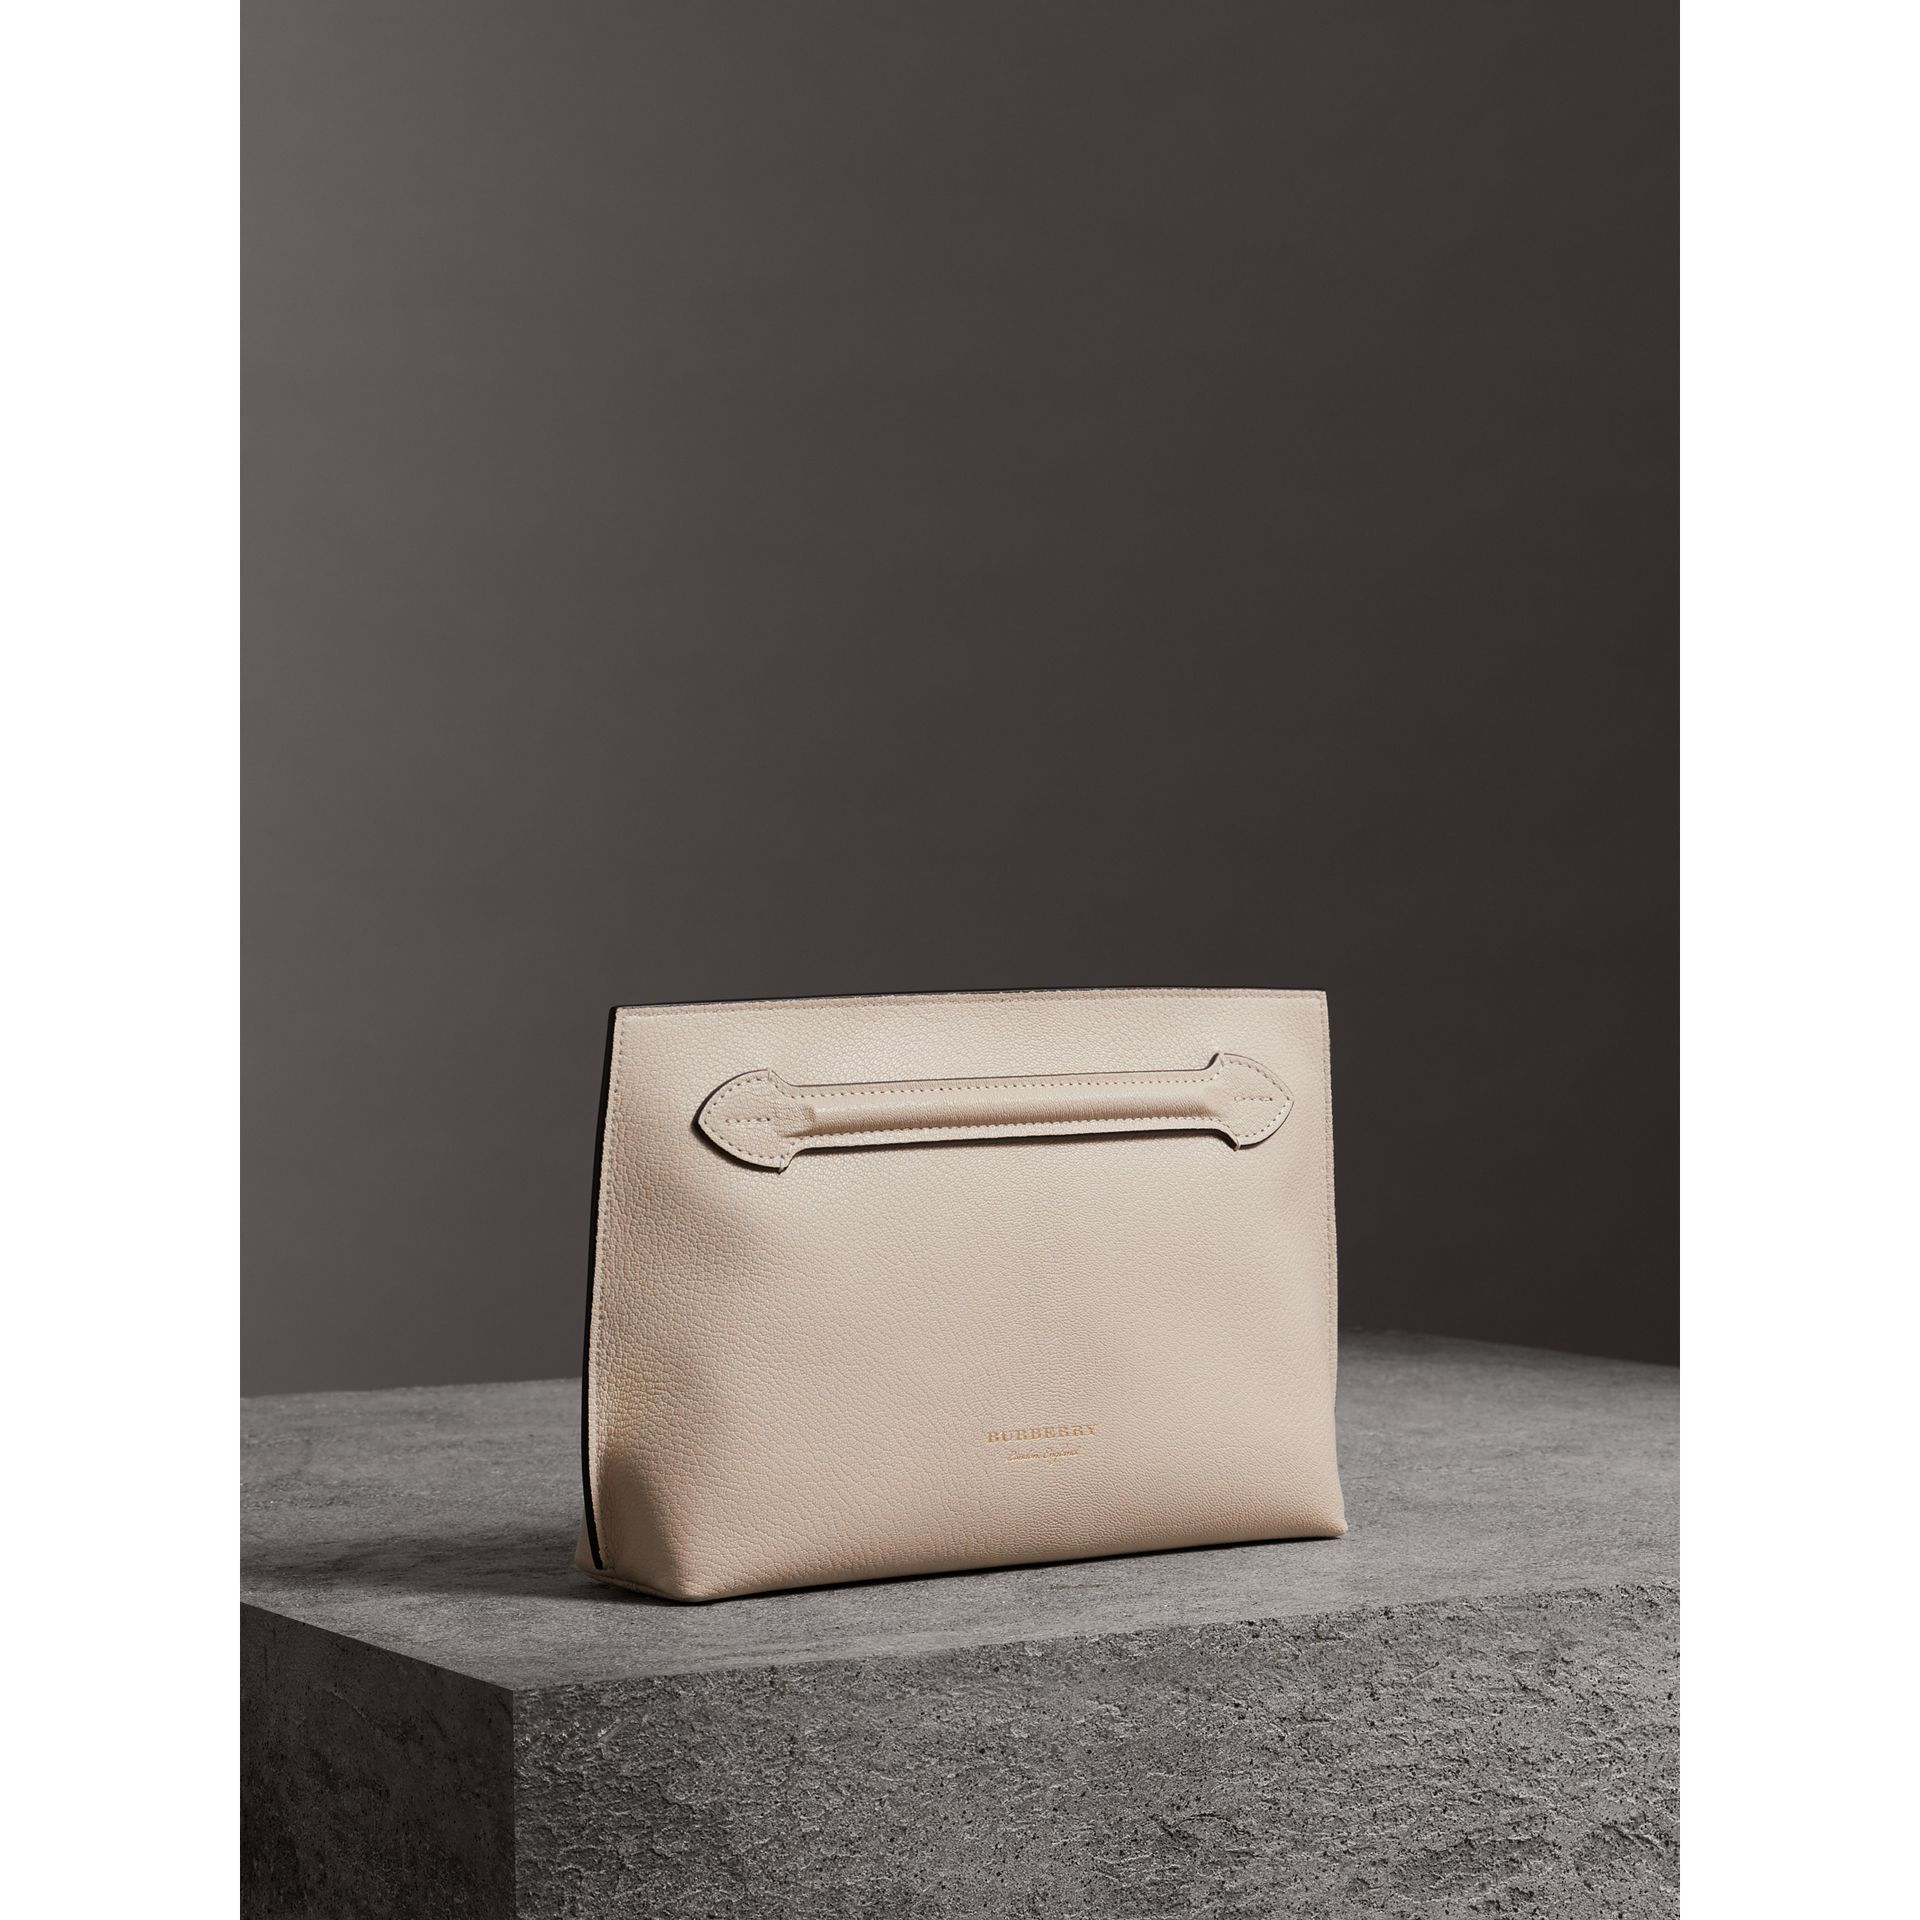 Grainy Leather Wristlet Clutch in Stone - Women | Burberry - gallery image 7